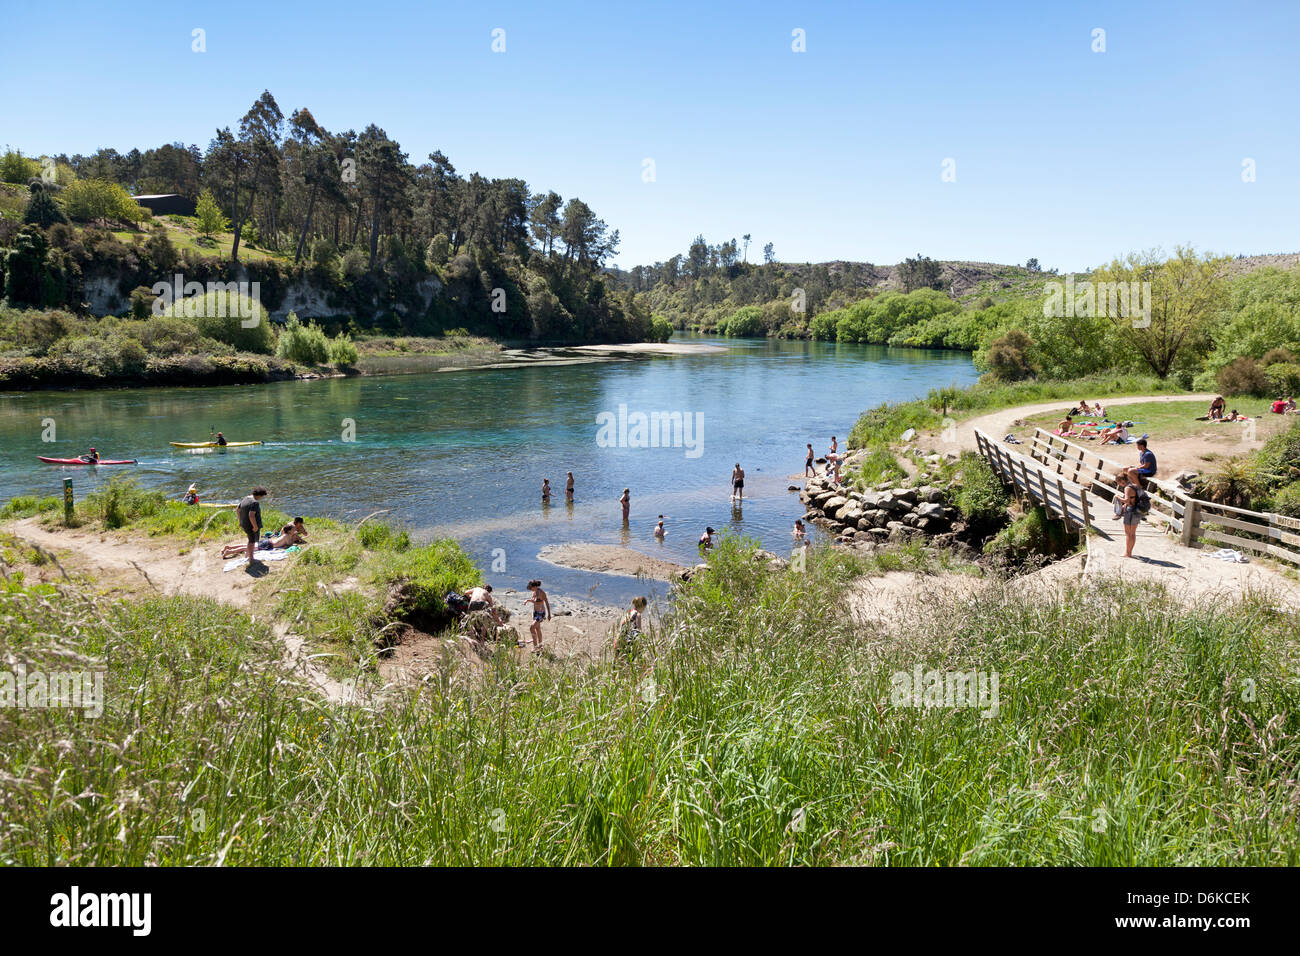 Thermal spring at the edge of the Waikato River New Zealand - Stock Image